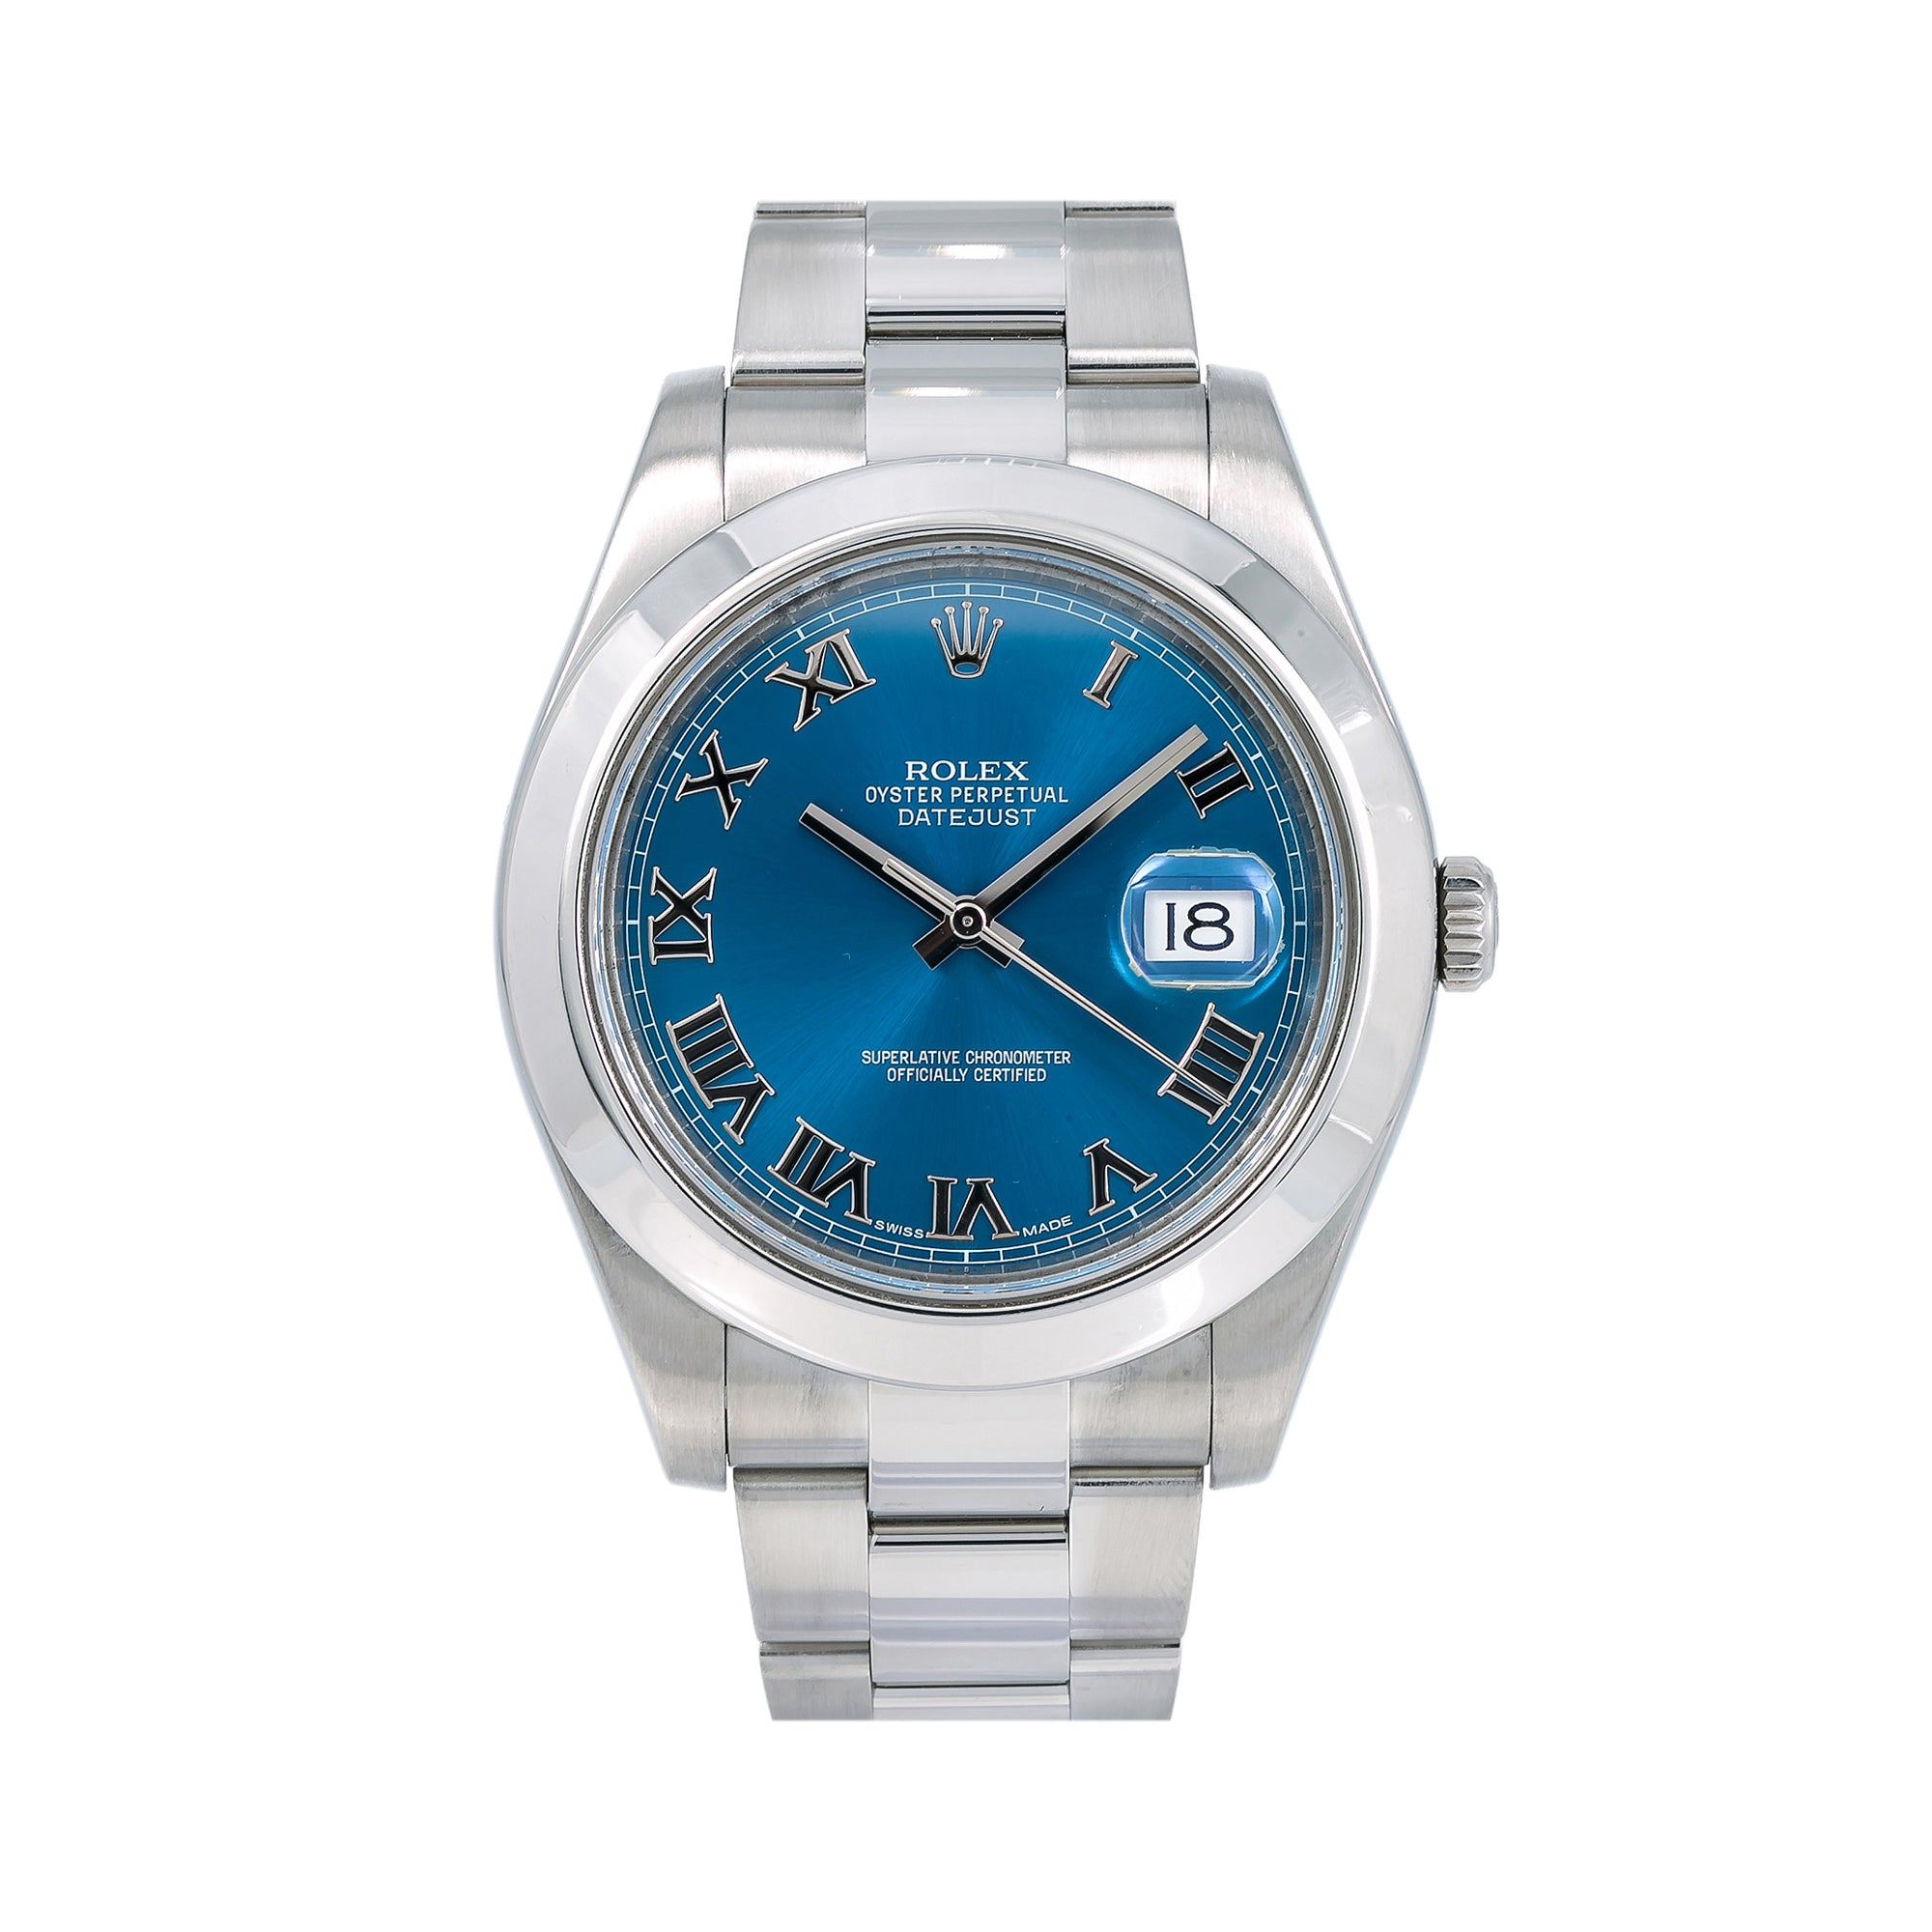 Rolex Datejust II 116300 41MM Blue Dial With Stainless Steel Bracelet